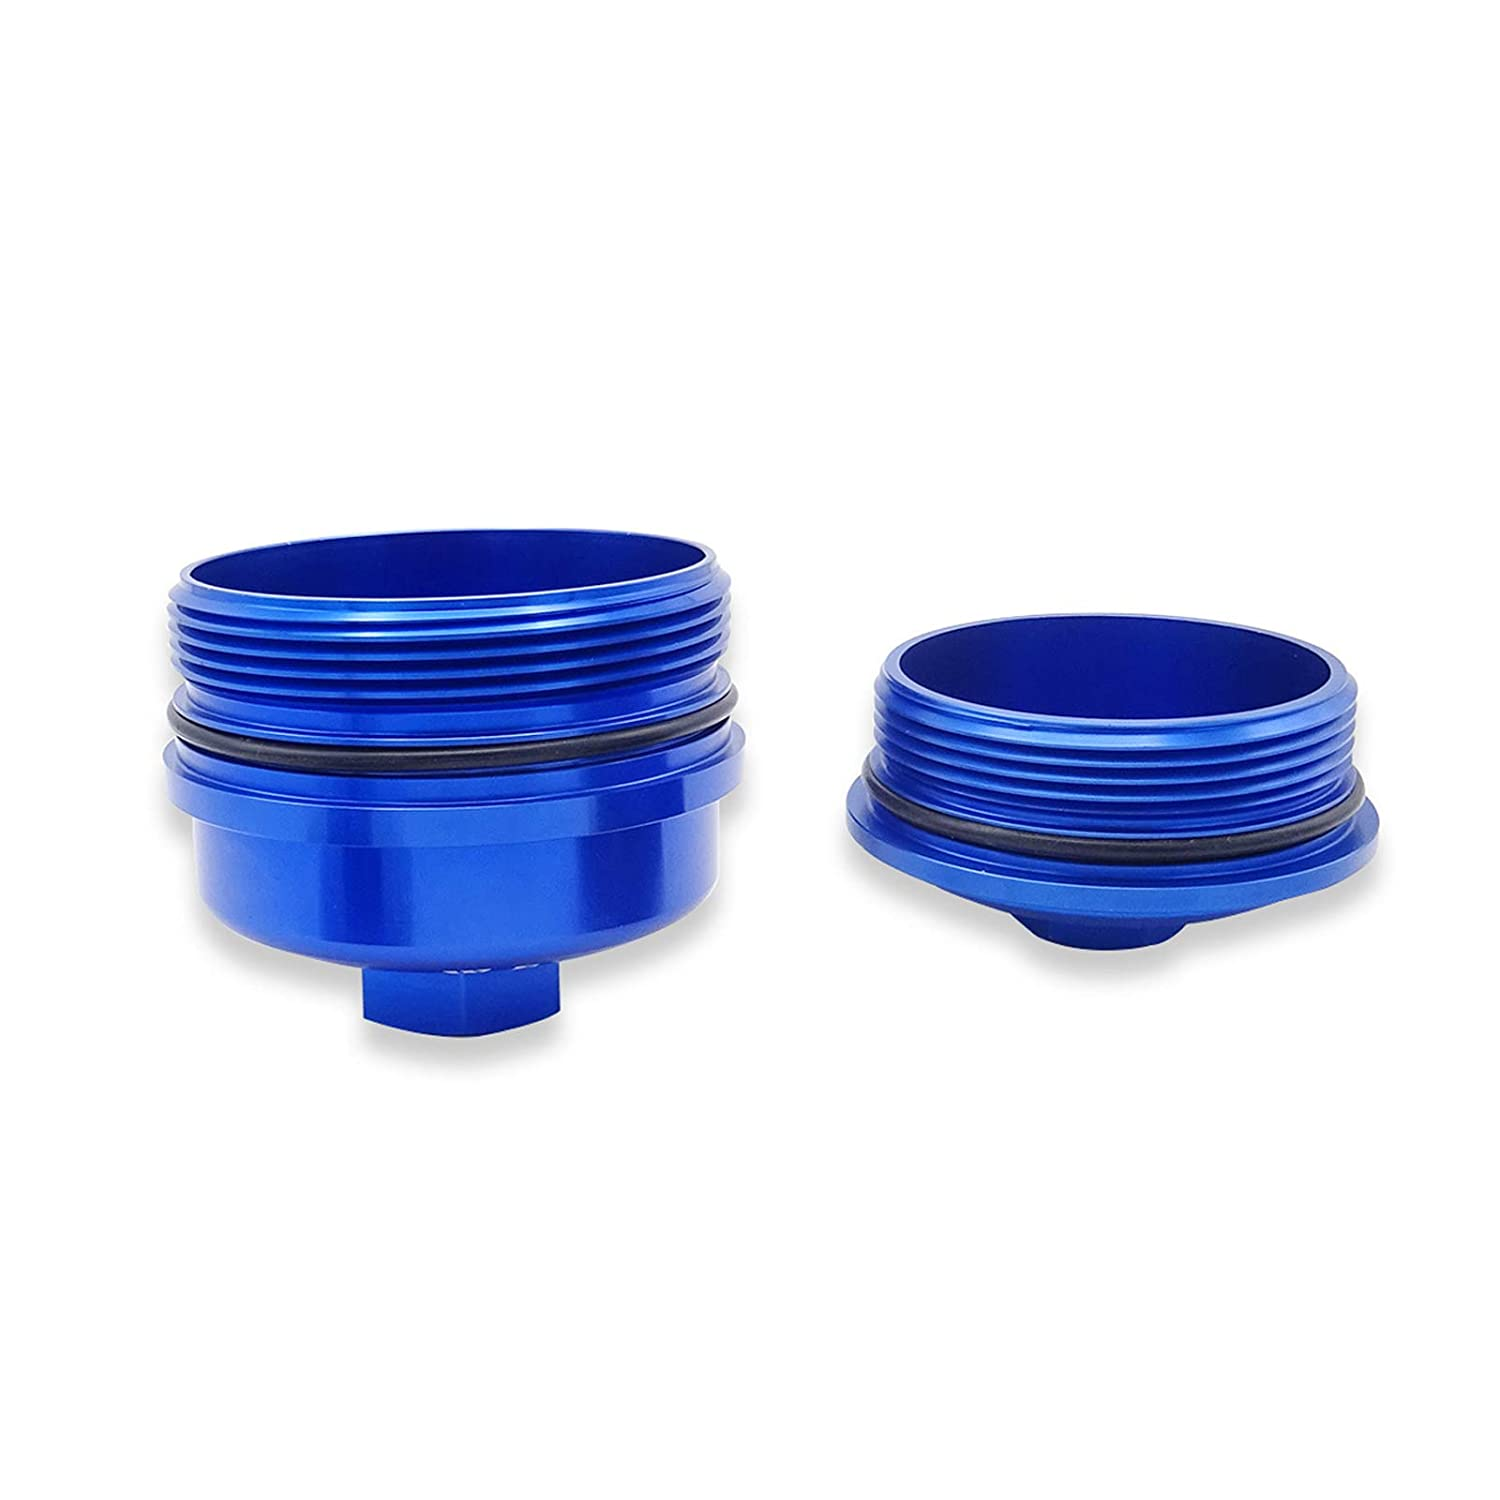 WeiSen Diesel Blue Oil Filter Cap with O-Ring For Ford Powerstroke 6.0L F250//F350 Super Duty 2003-2007 Billet Aluminum